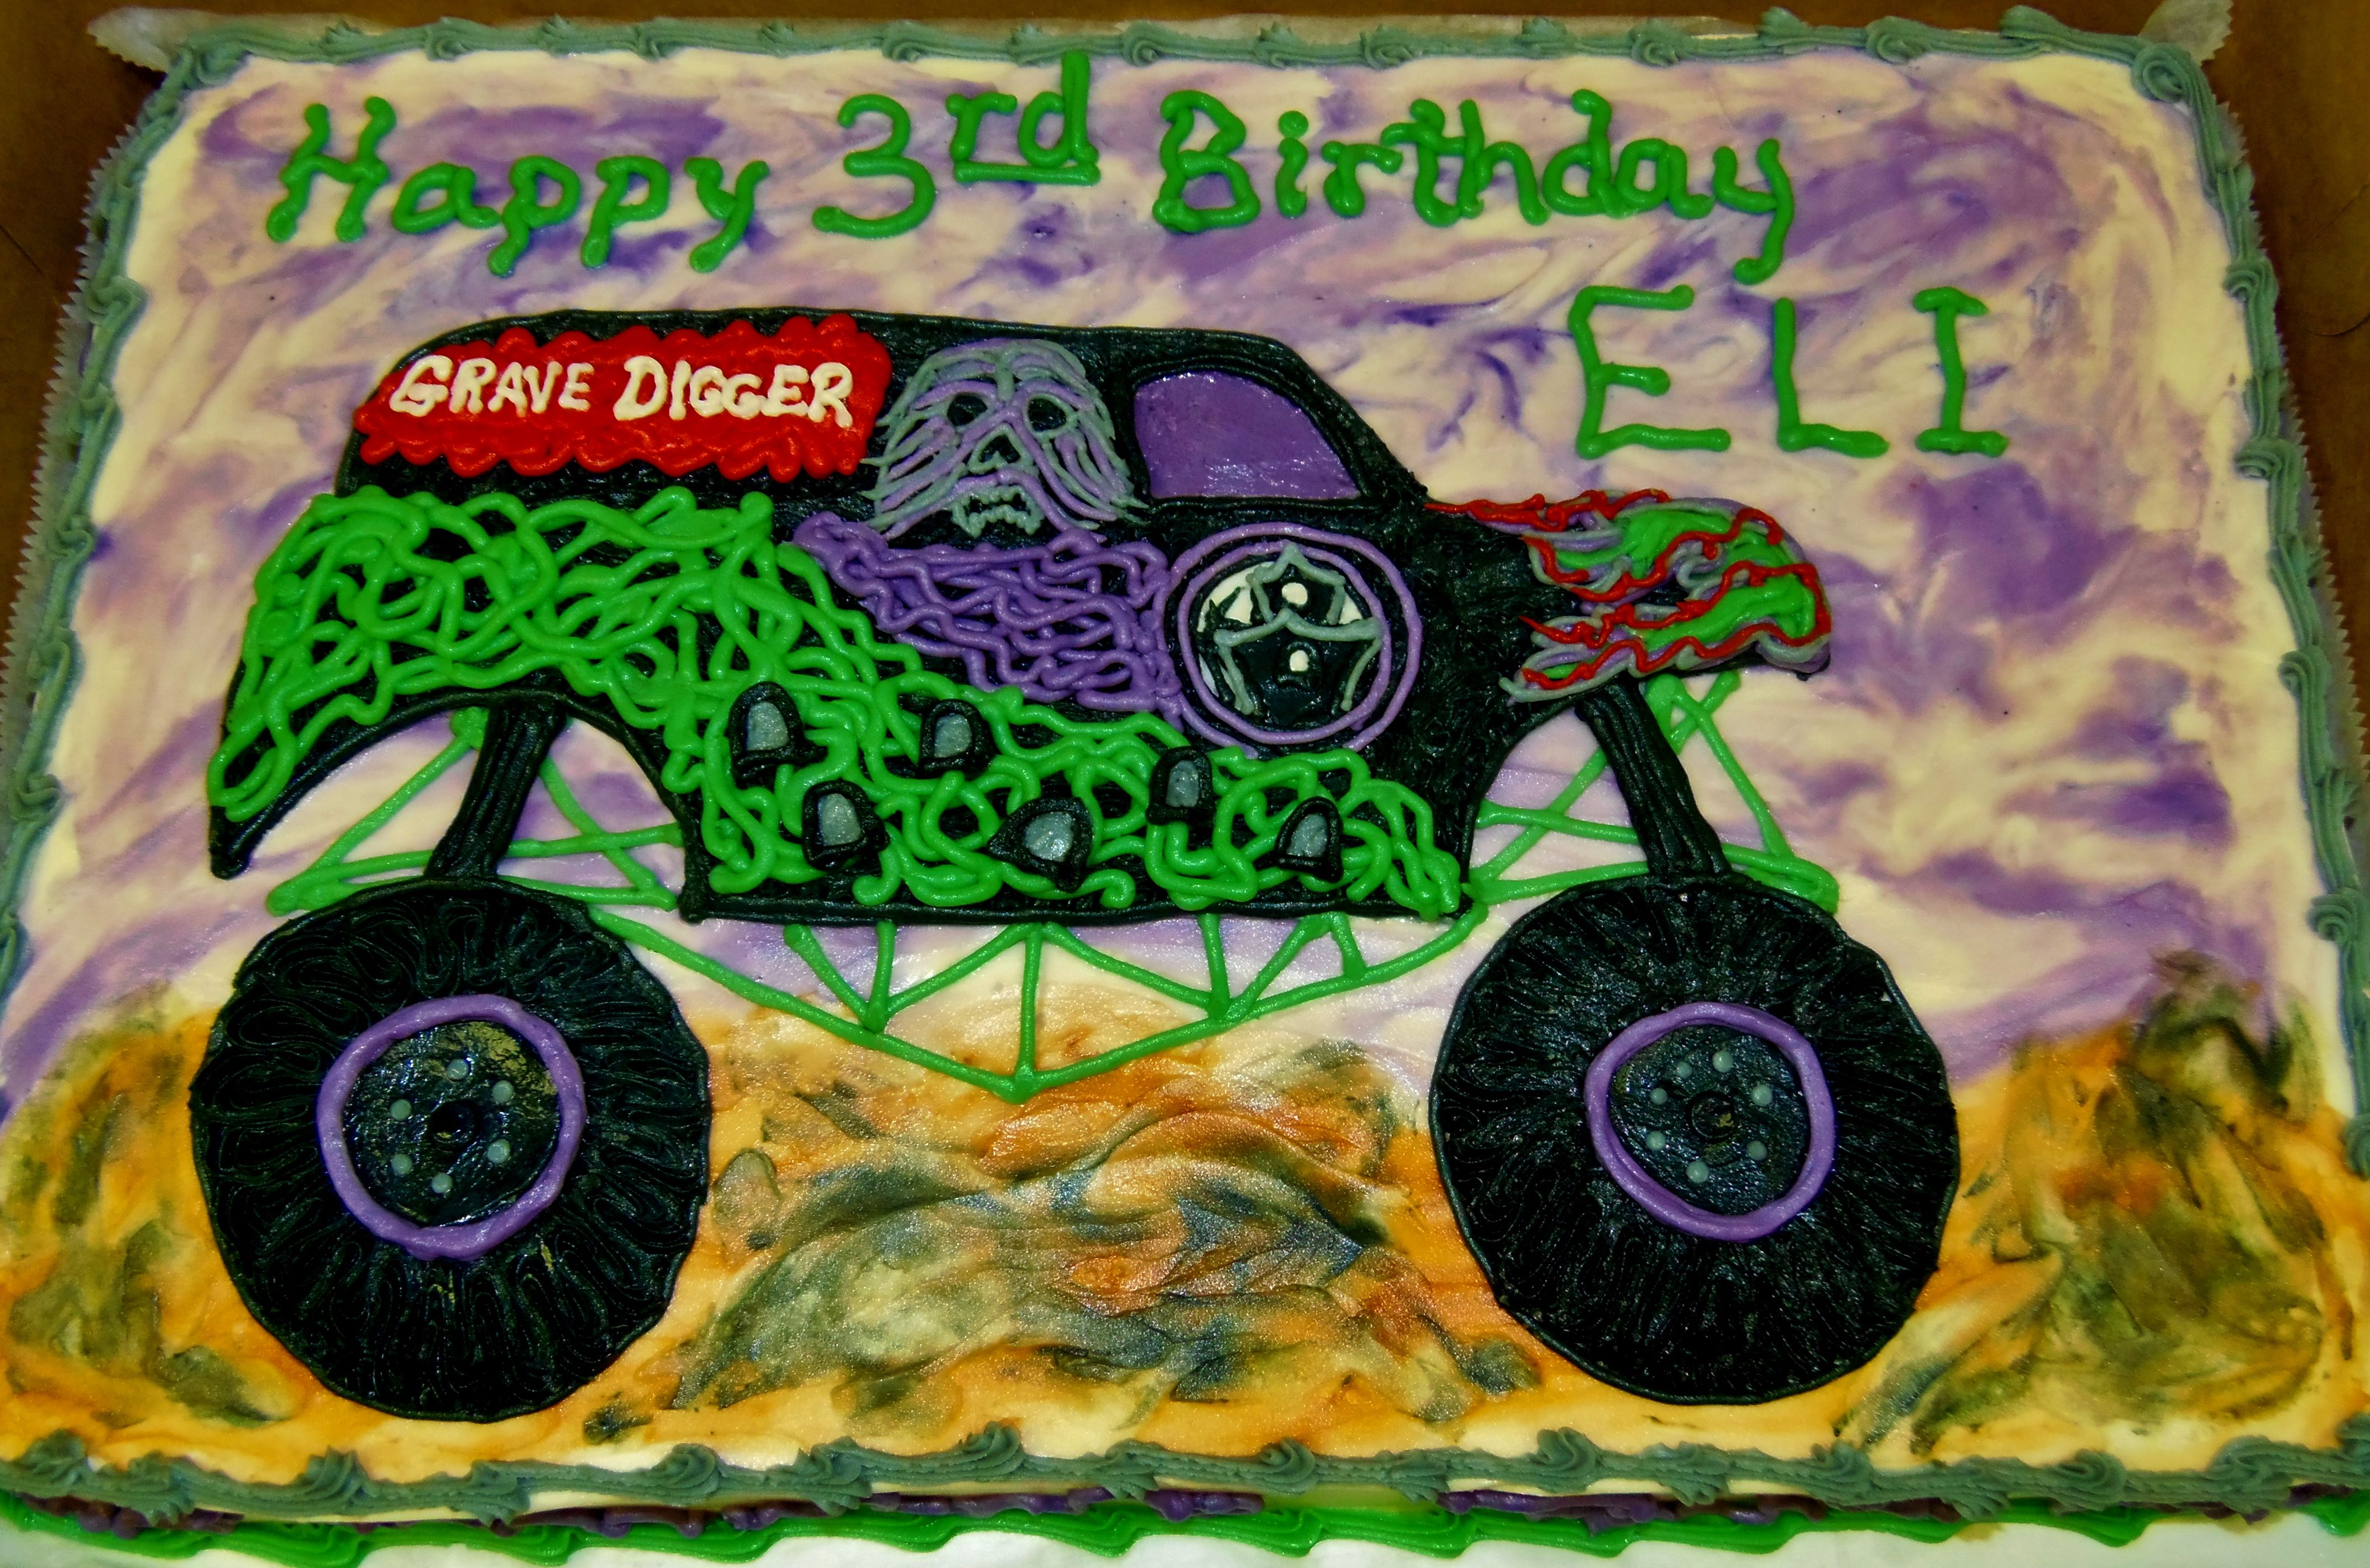 Share grave birthday cake view original updated on 08 25 2014 at